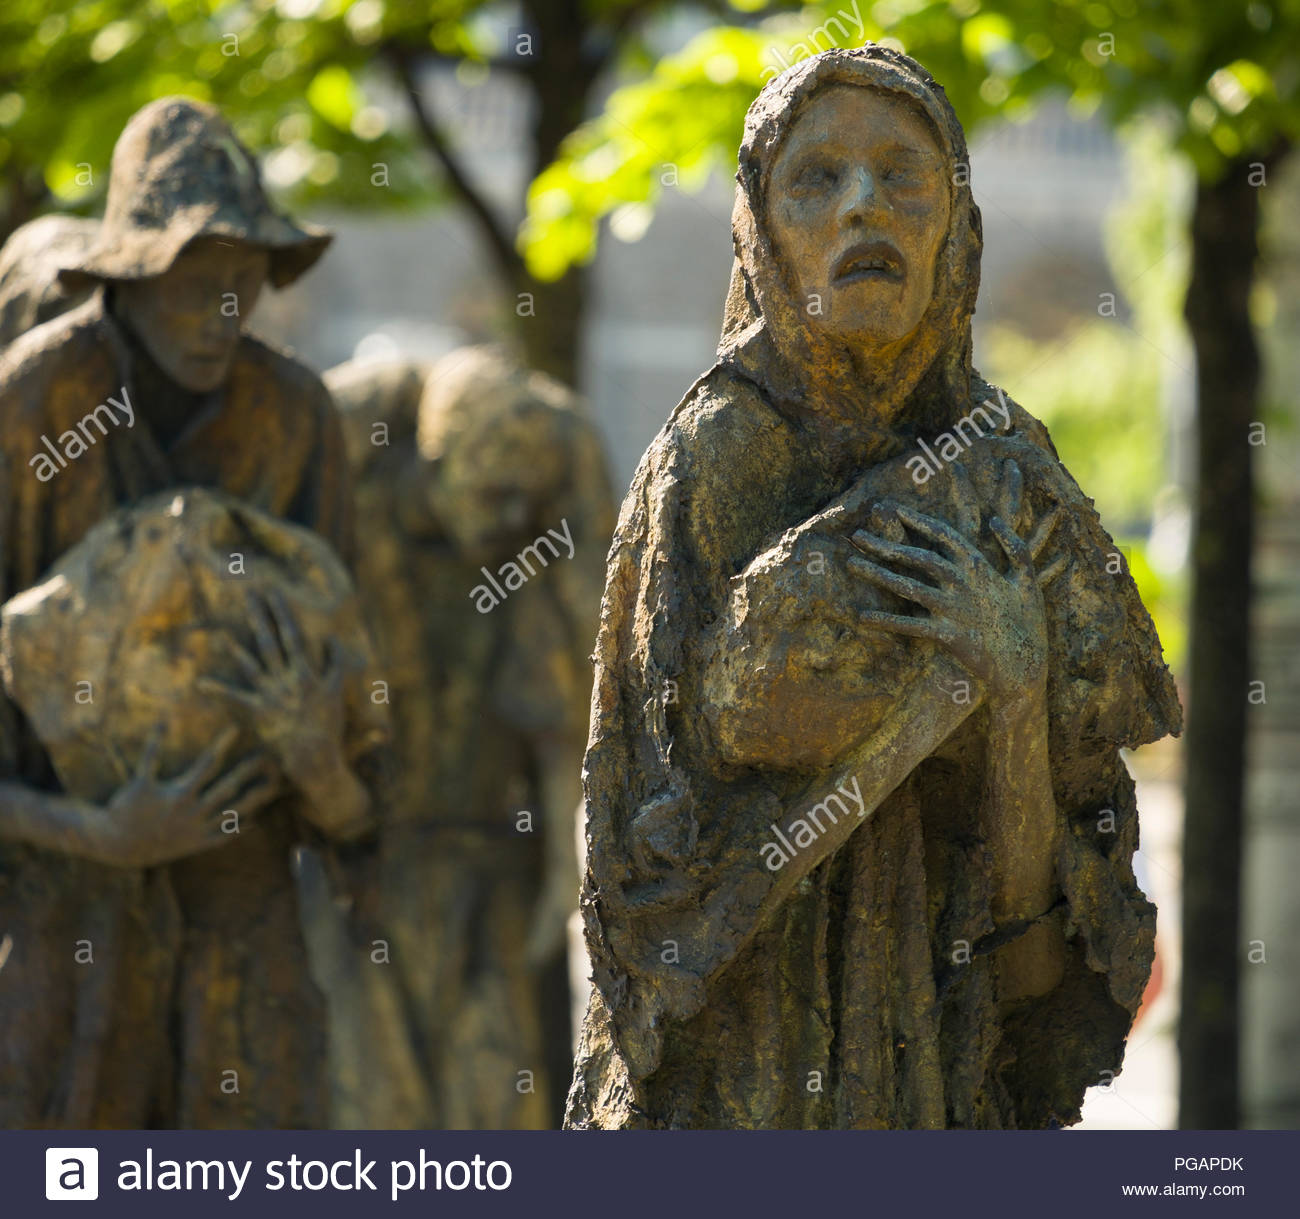 Haunting statues at the Famine Memorial by Rowan Gillespie, Custom House Quay, North Dock, Dublin, Leinster, Ireland - Stock Image